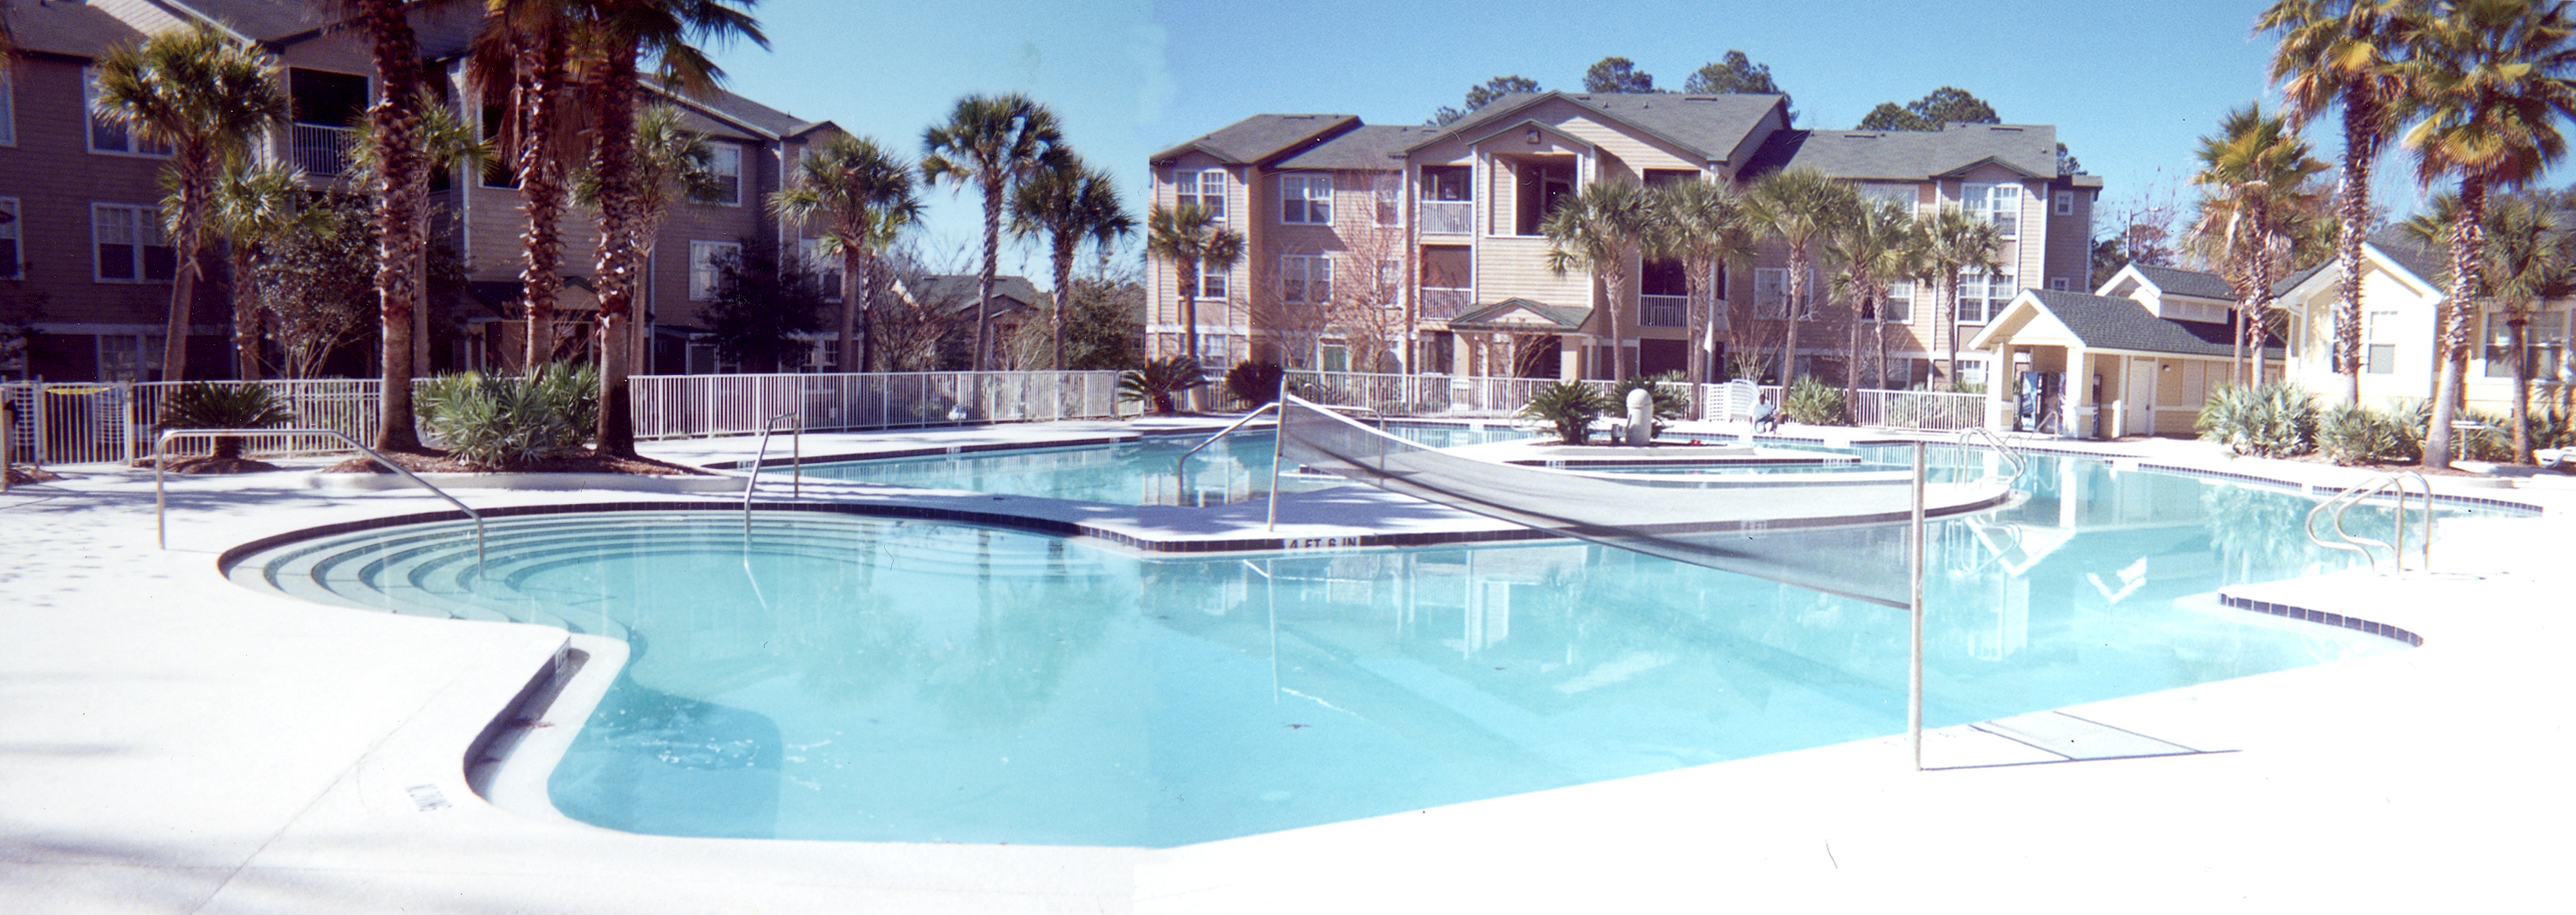 Pool service and pool cleaning commercial residential for Commercial pools